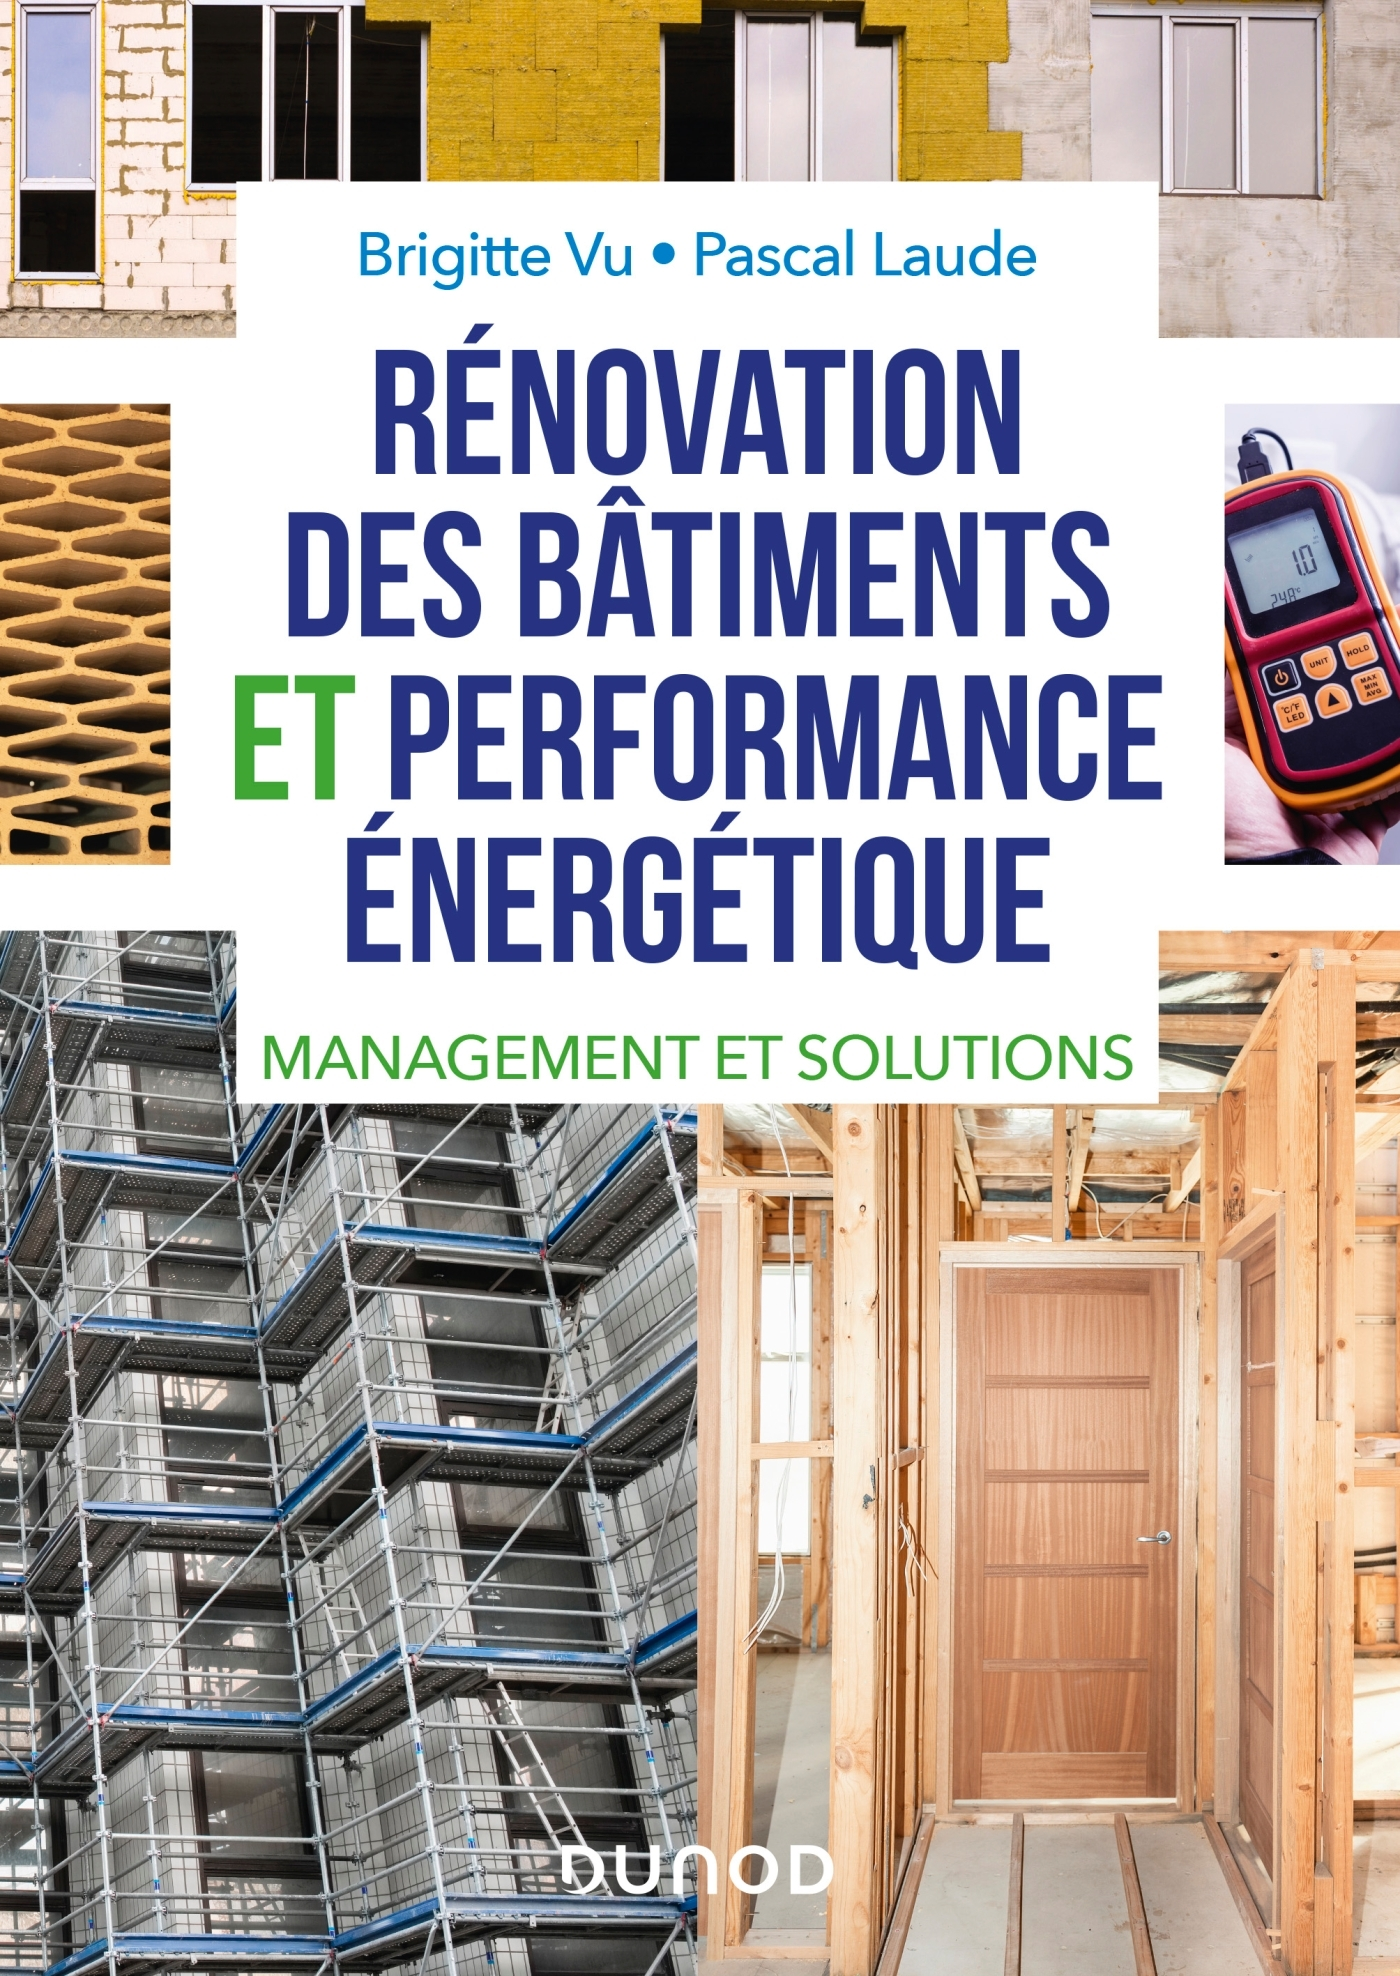 RENOVATION DES BATIMENTS ET PERFORMANCE ENERGETIQUE - MANAGEMENT ET SOLUTIONS